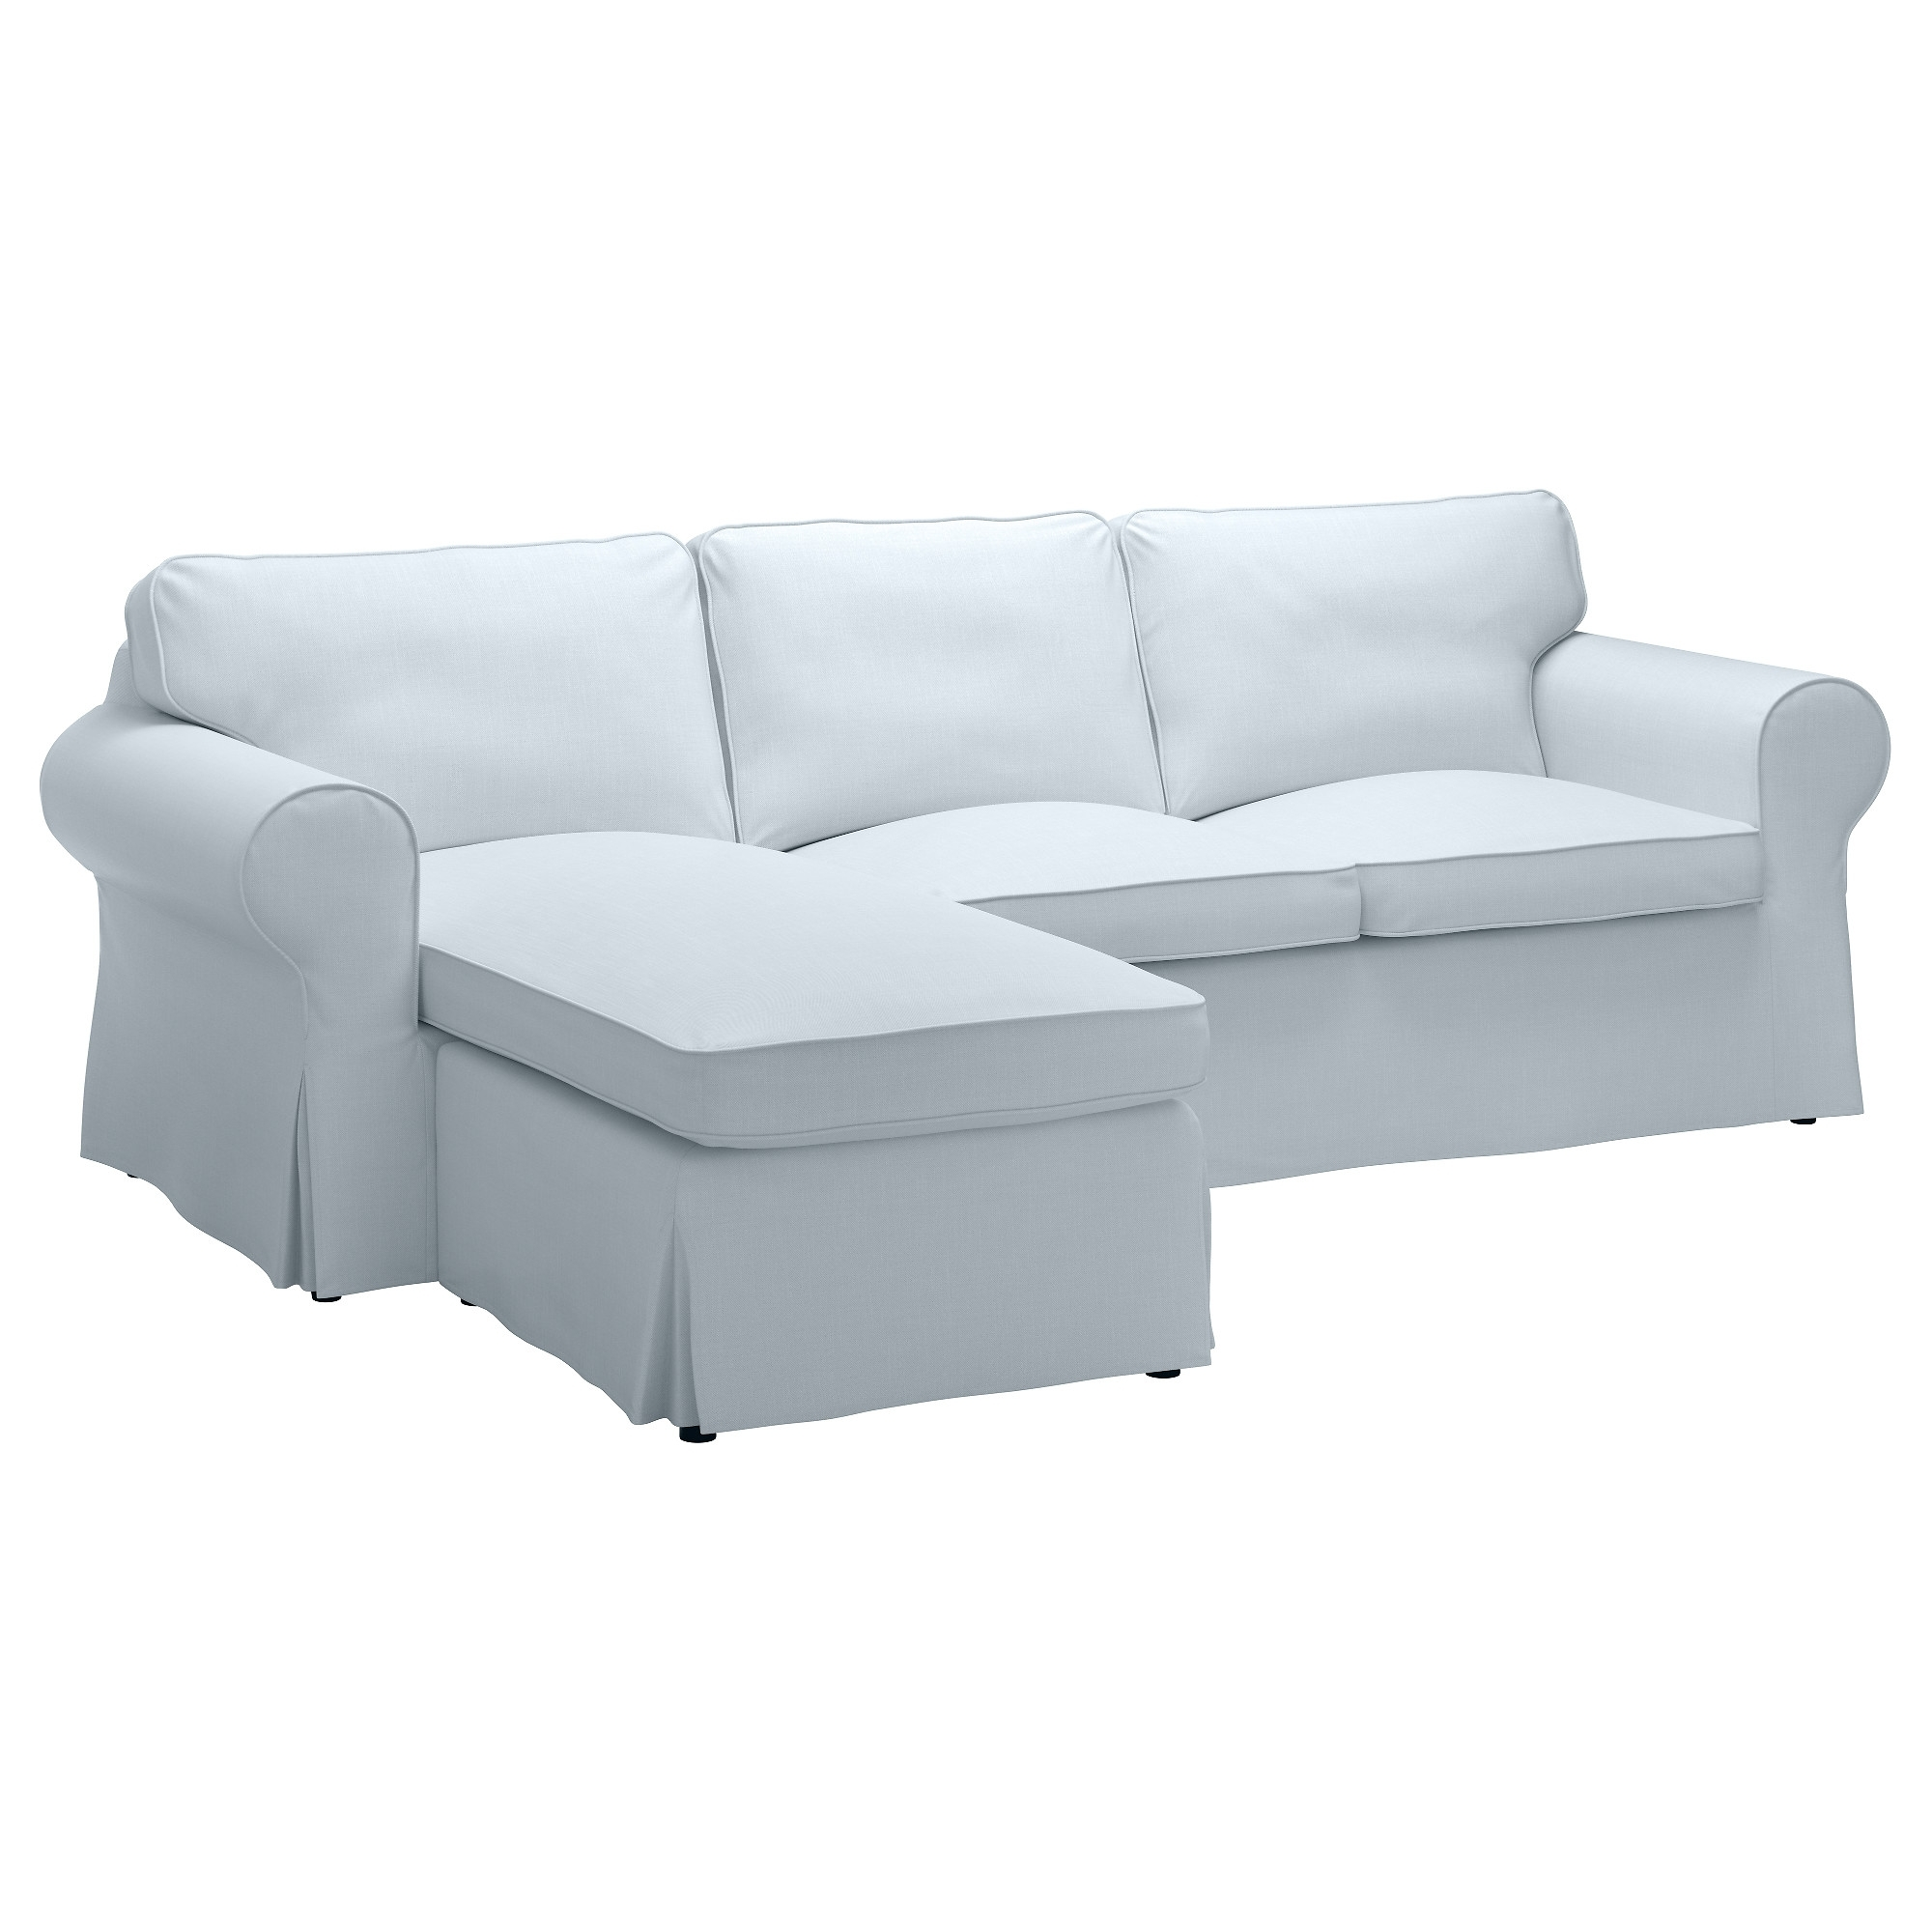 Best And Newest Small Sectional Sofa Ikea 80 With Small Sectional Sofa Ikea Within Sectional Sofas At Ikea (View 3 of 20)